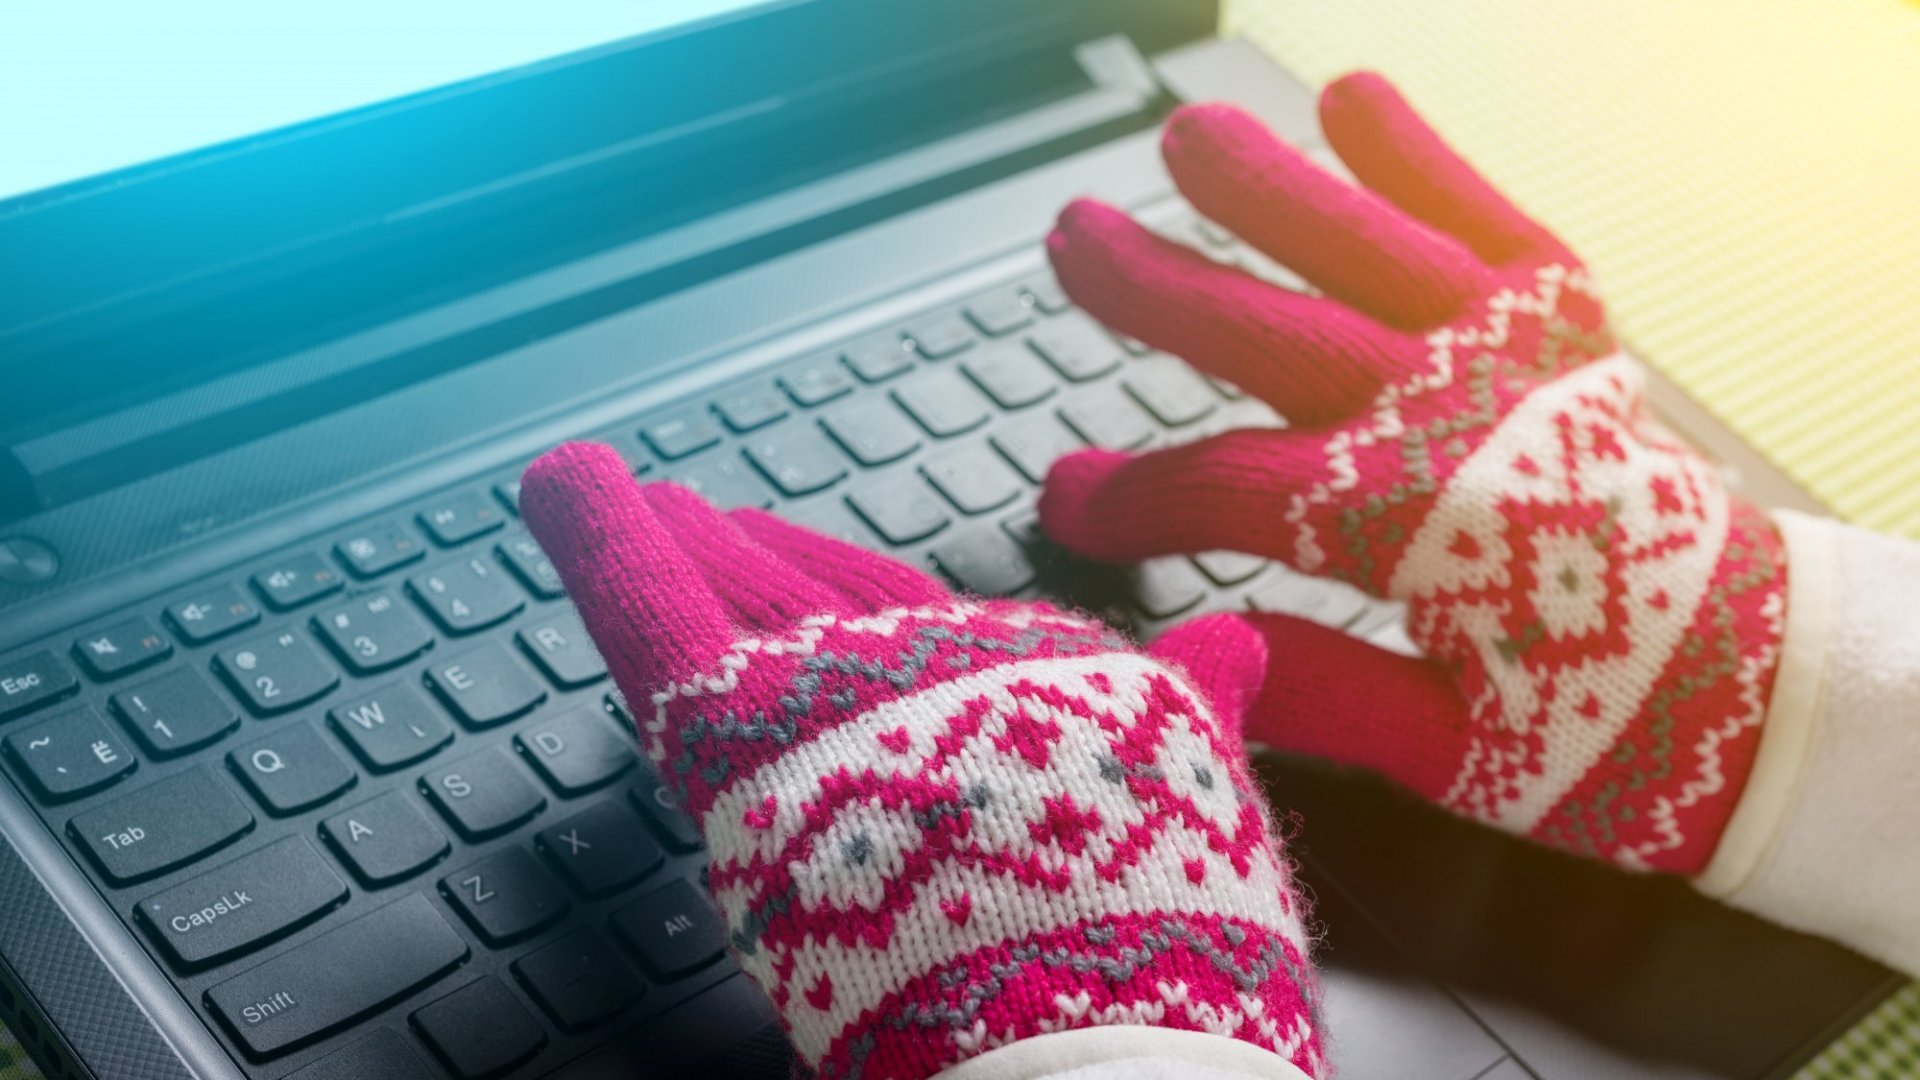 7 Ways to Boost Your Team's Morale During the Cold Months of Winter